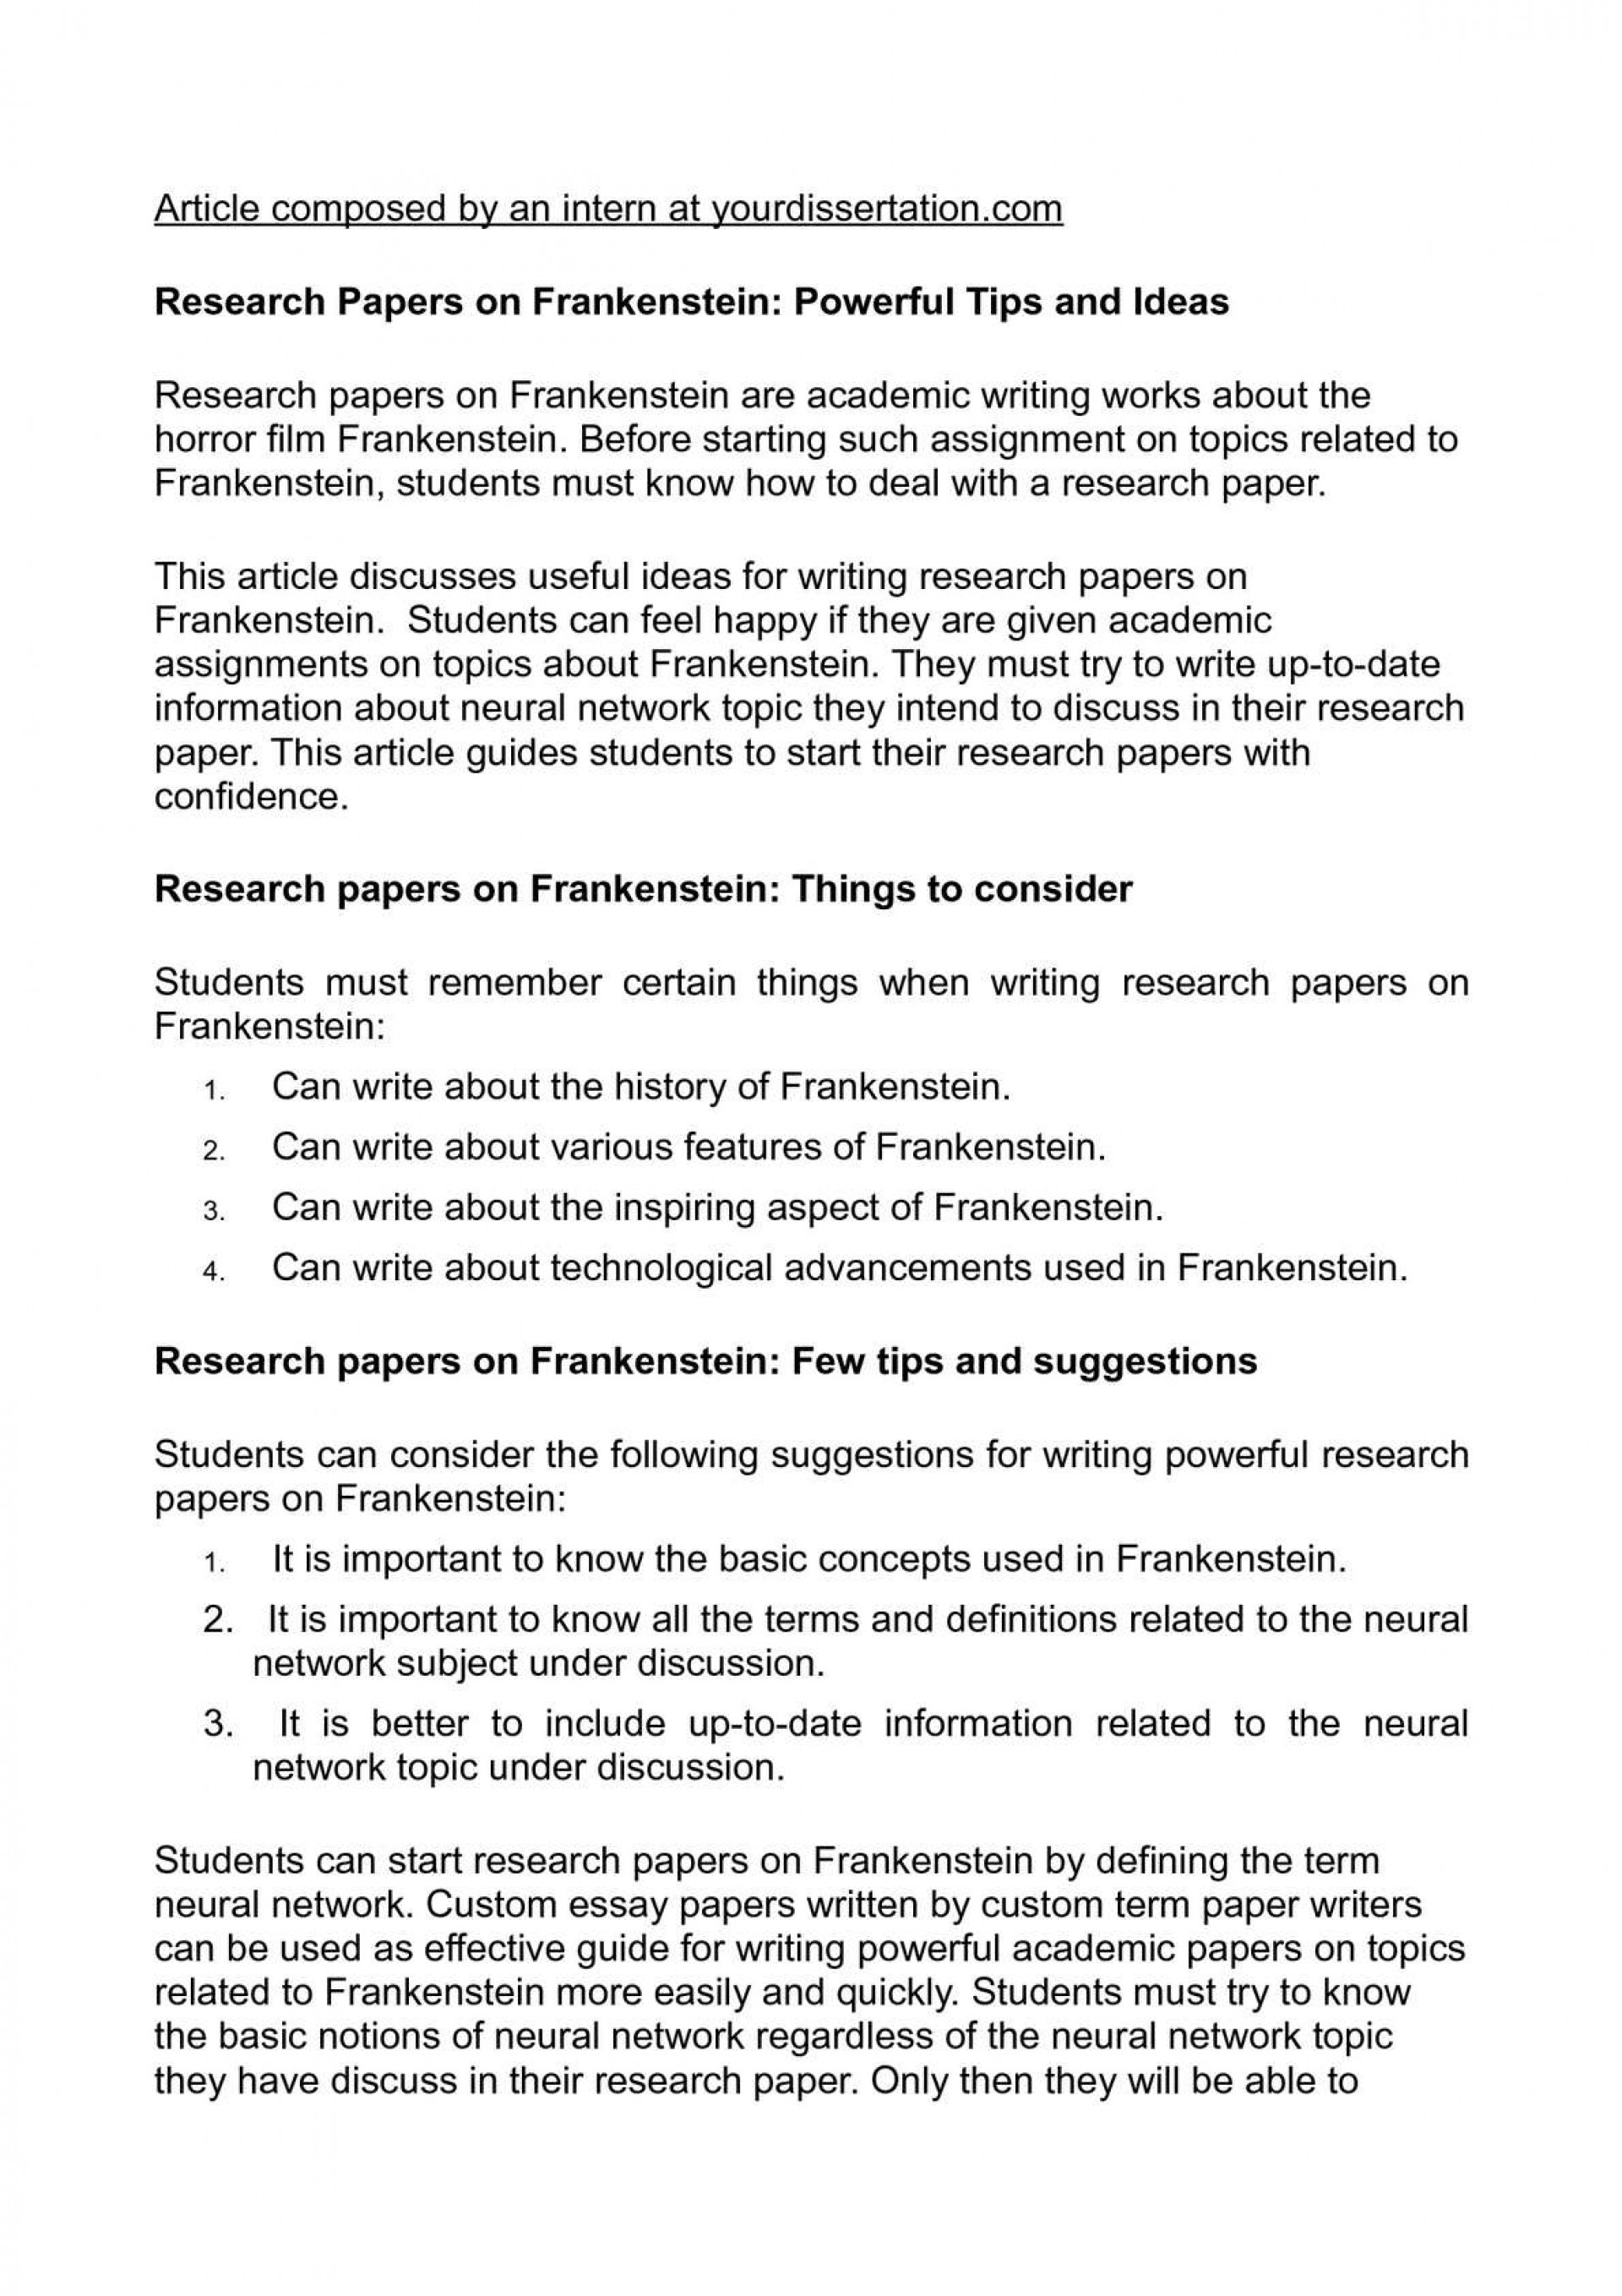 017 History Topics To Write Research Paper Breathtaking A 1920